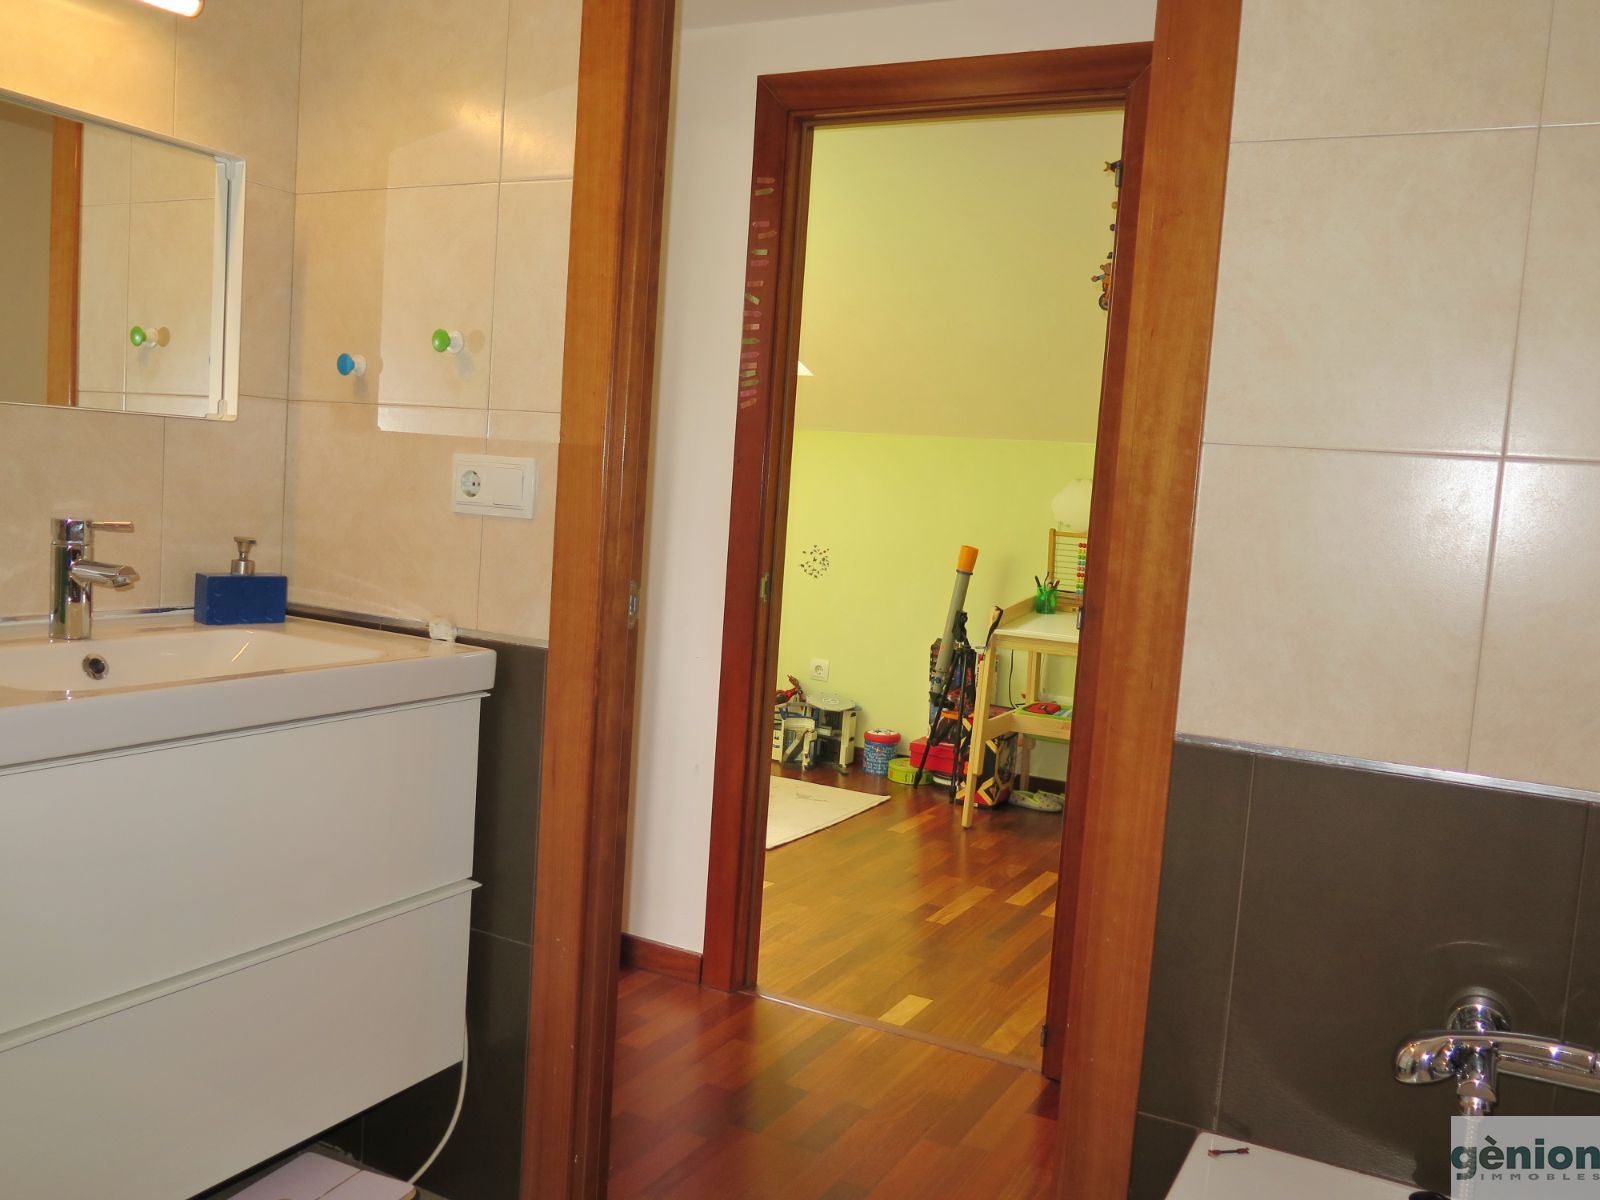 TWO-STOREY APARTMENT WITH 3 BEDROOMS AND 2 BATHROOMS IN GIRONA CITY CENTRE. OPTIONAL PARKING PLACE